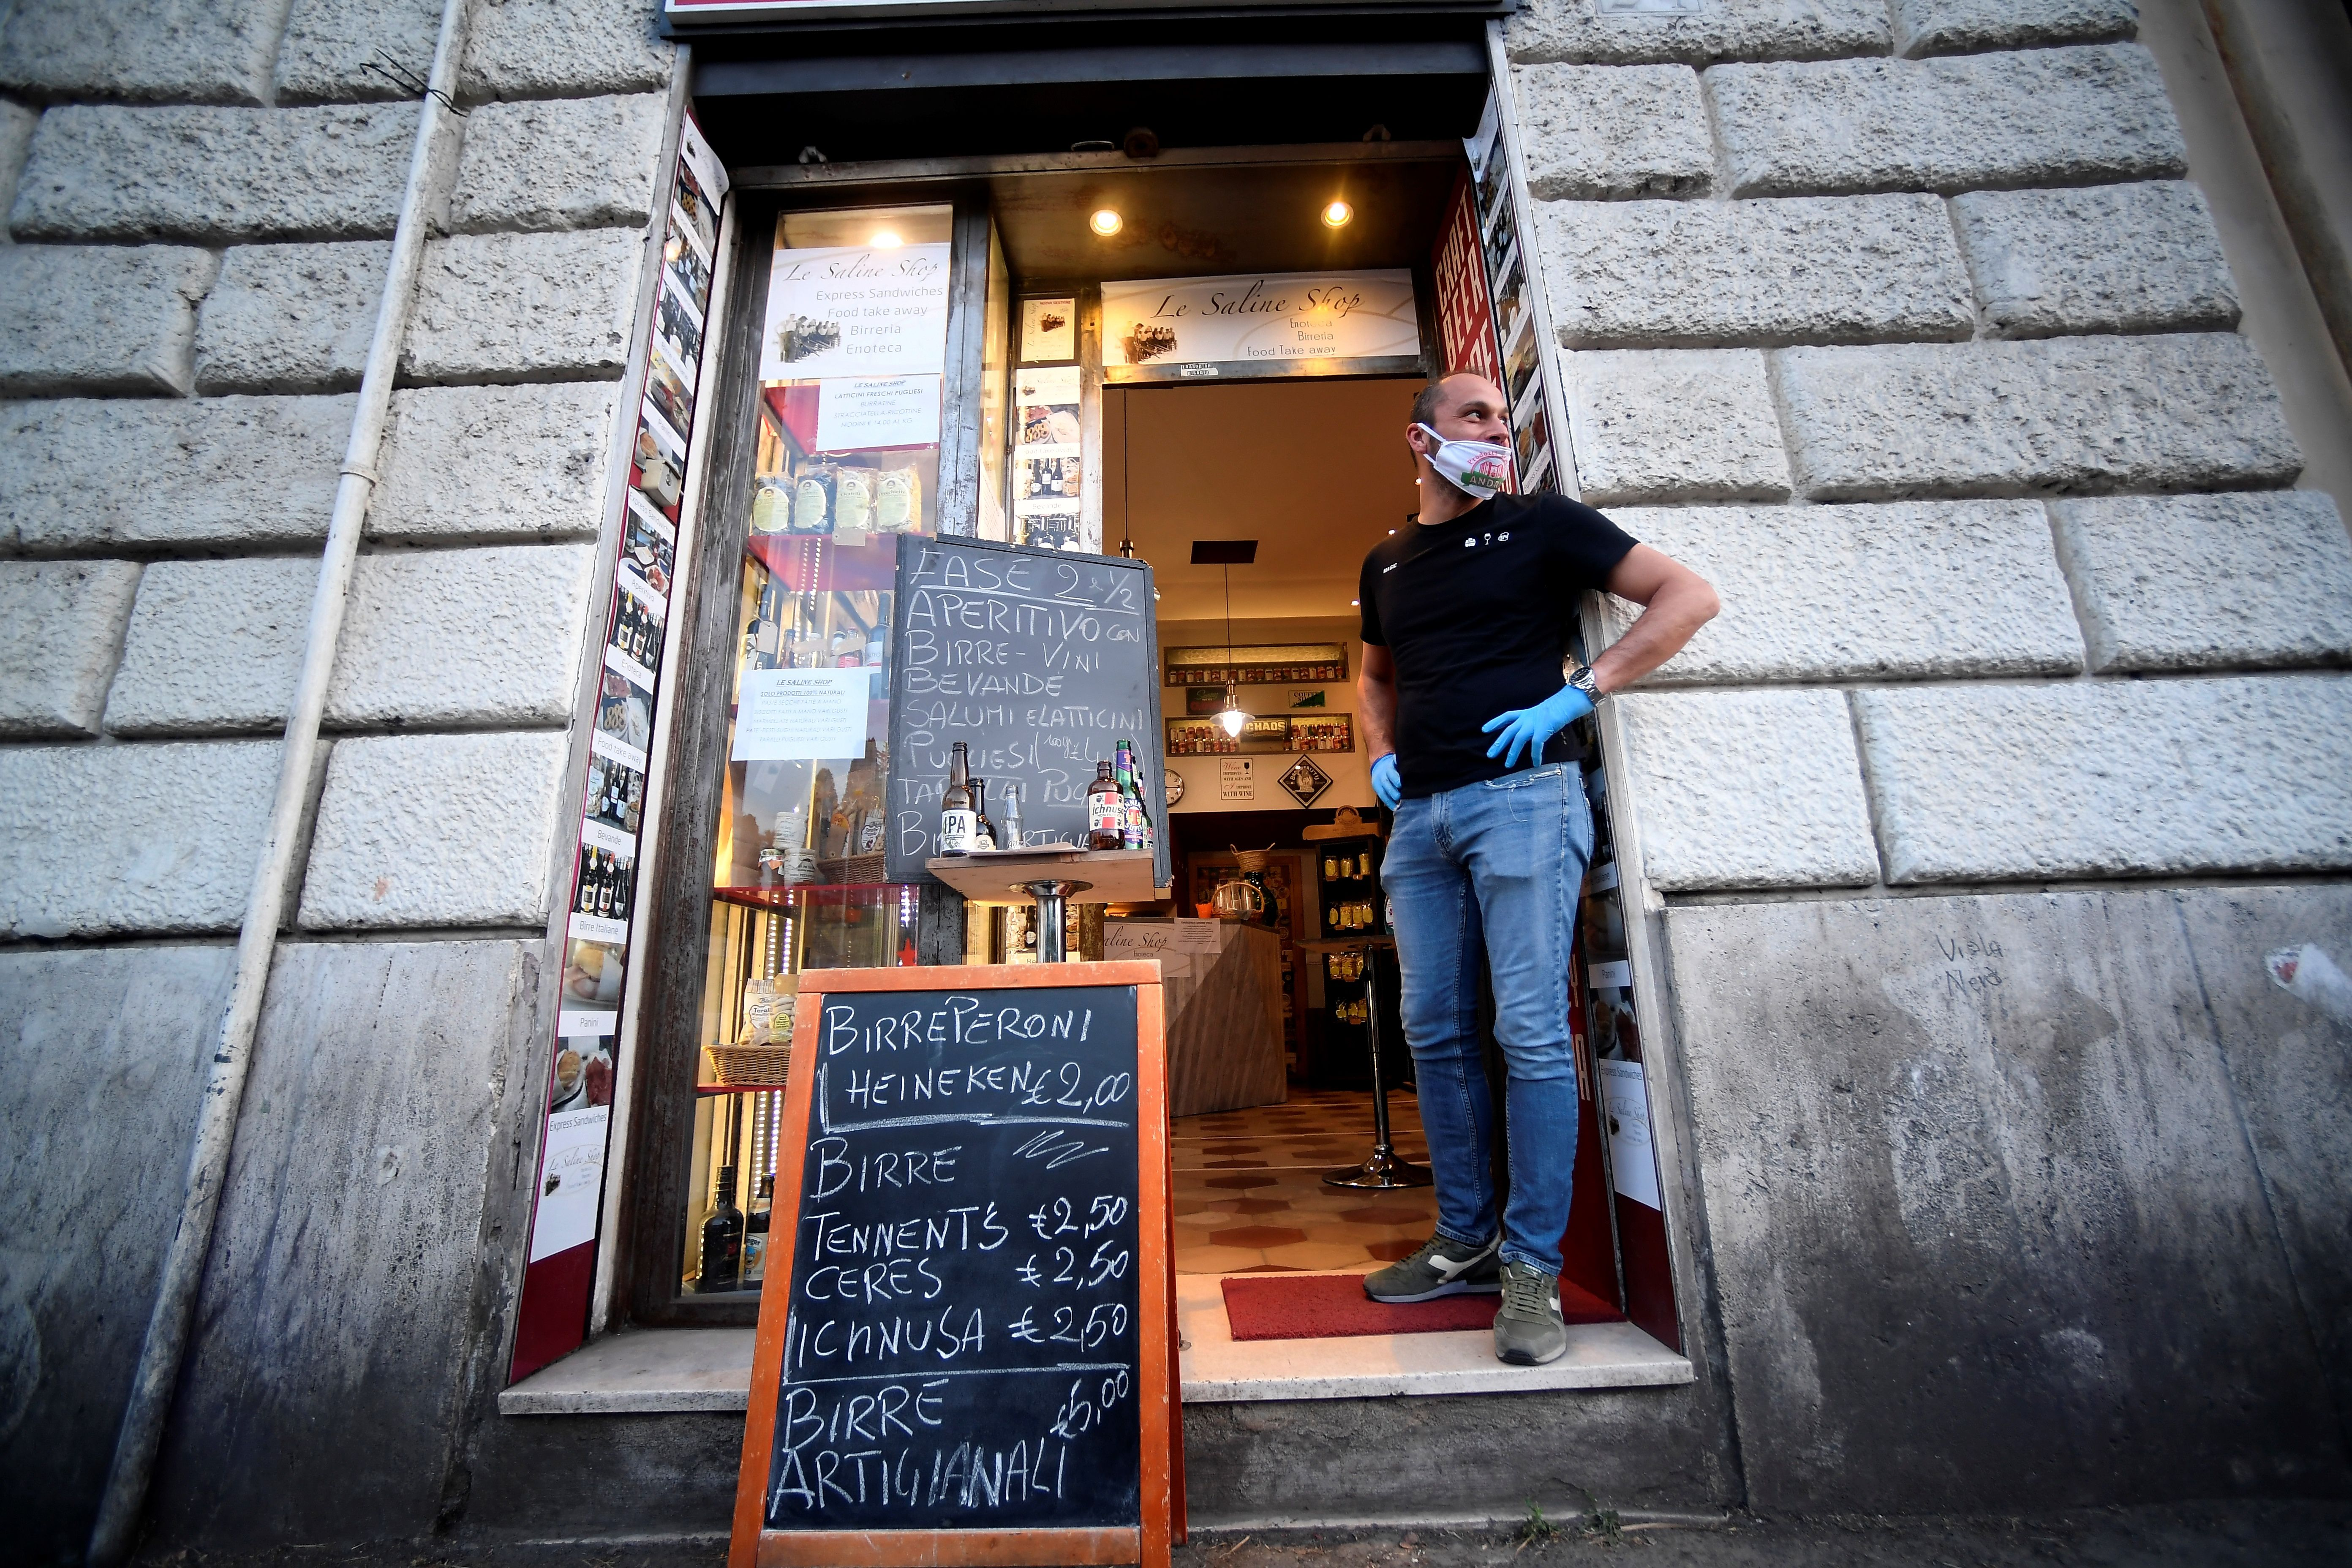 A bar owner waits for aperitif customers outside a bar by the colosseum in Rome, on May 18, 2020. (Photo by FILIPPO MONTEFORTE/AFP via Getty Images)